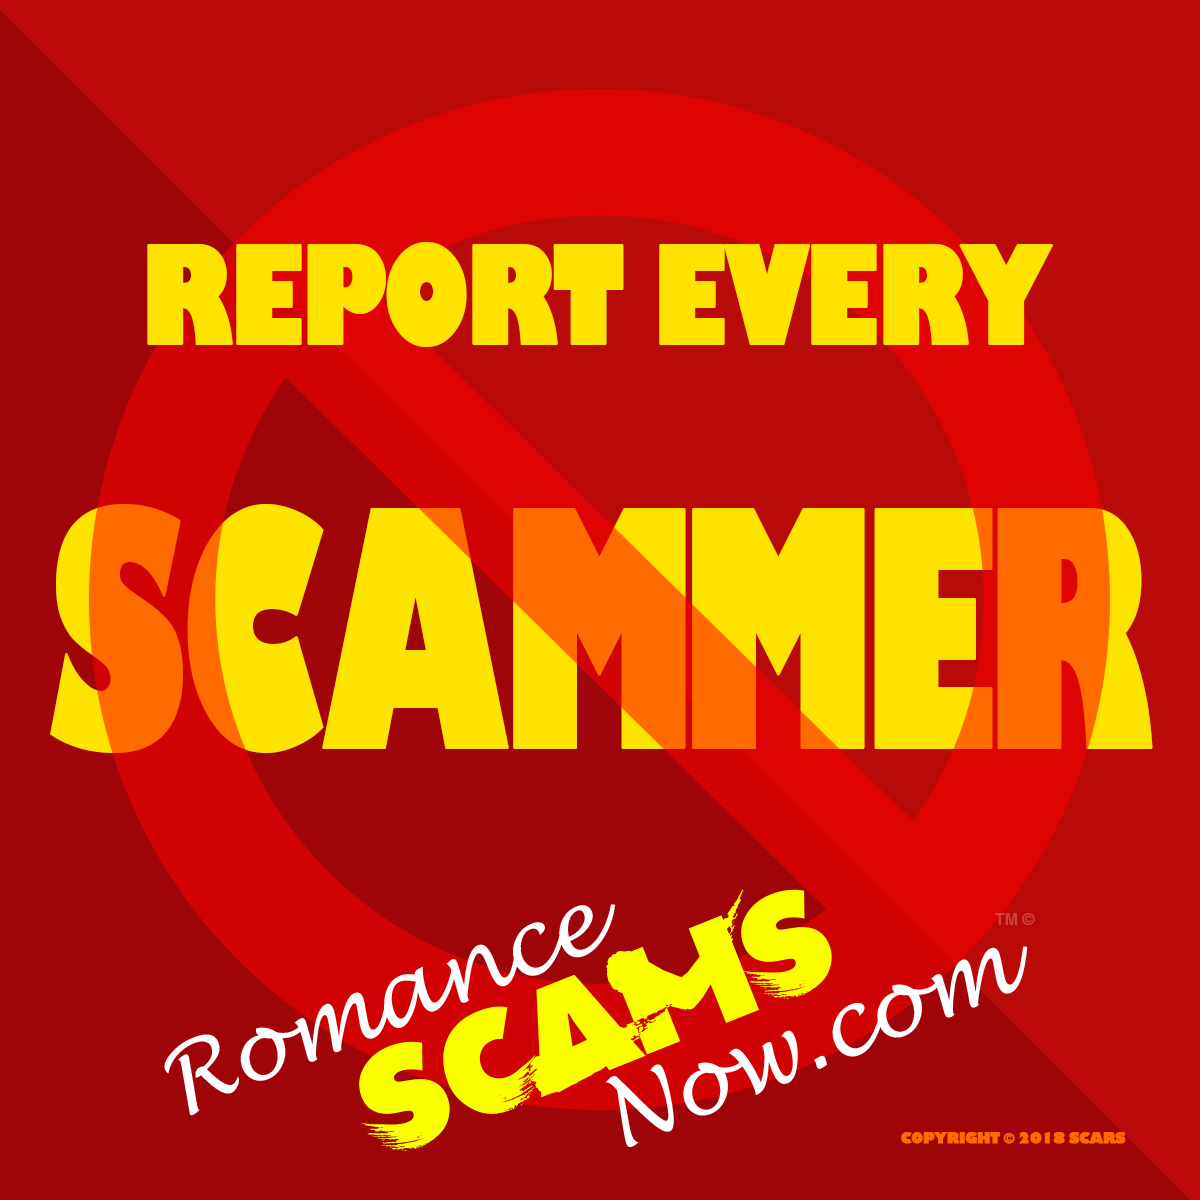 Report Every Scammer